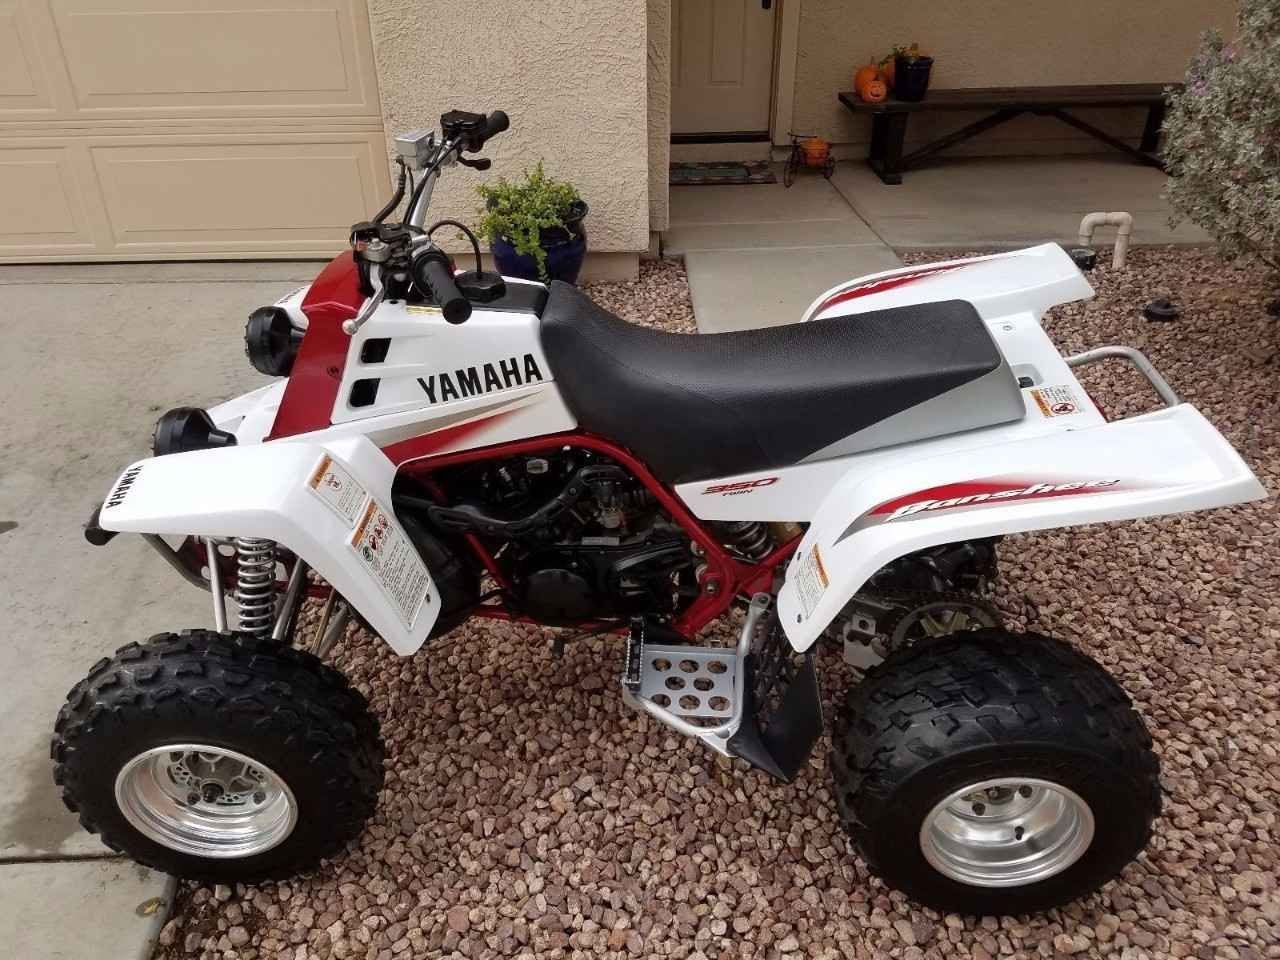 Used 2004 Yamaha Banshee 350 Atvs For Sale In West Virginia 2004